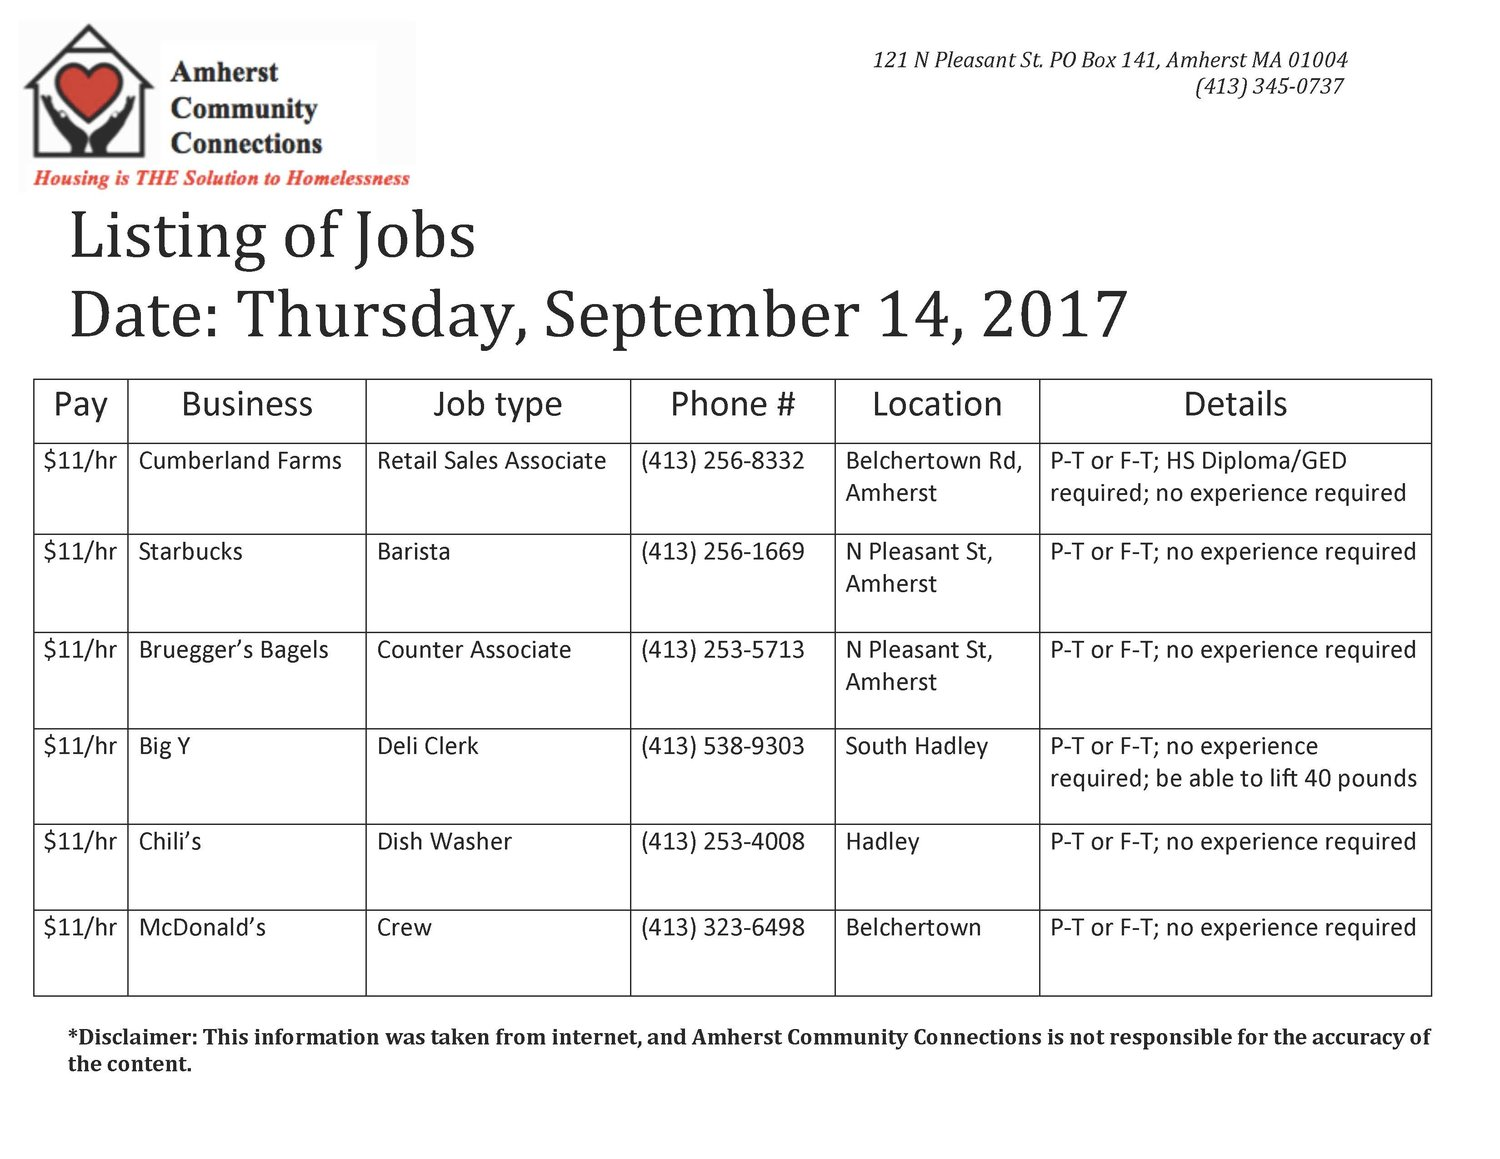 JOB LISTINGS — Amherst Community Connections